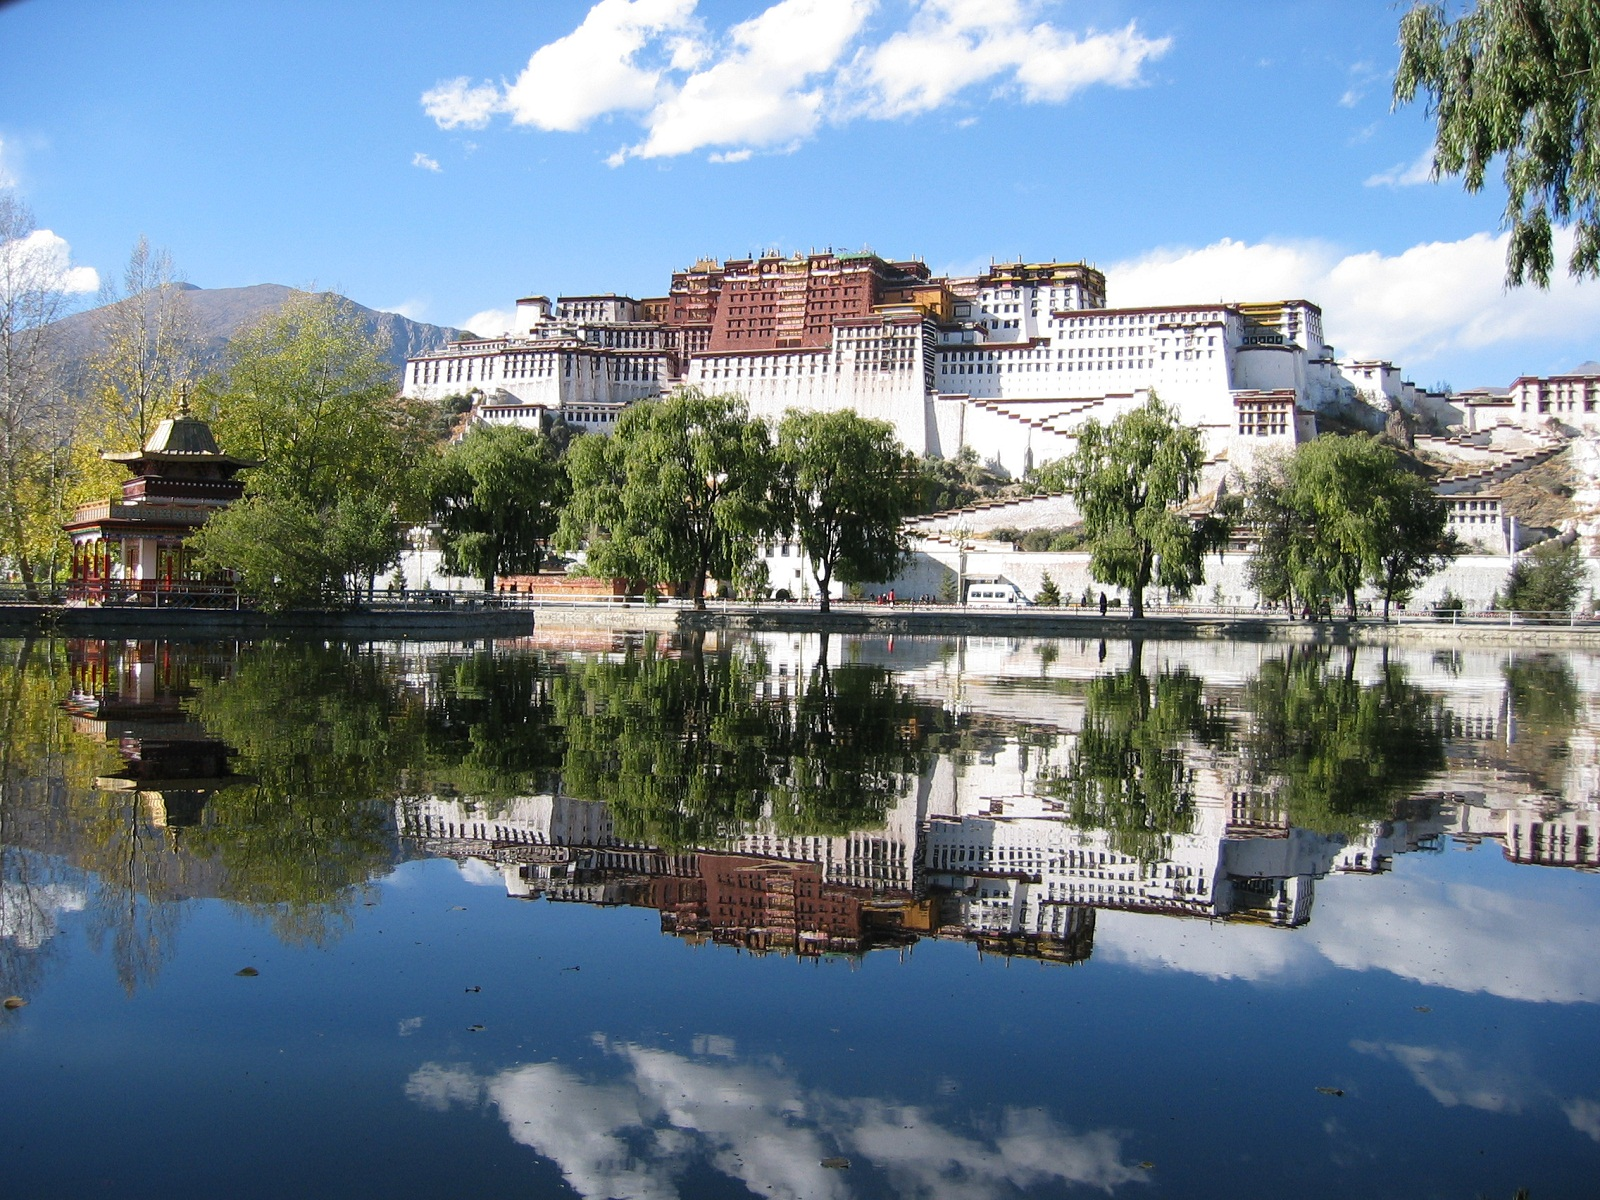 Potala Palace, Tibet, China, Palace lake reflection